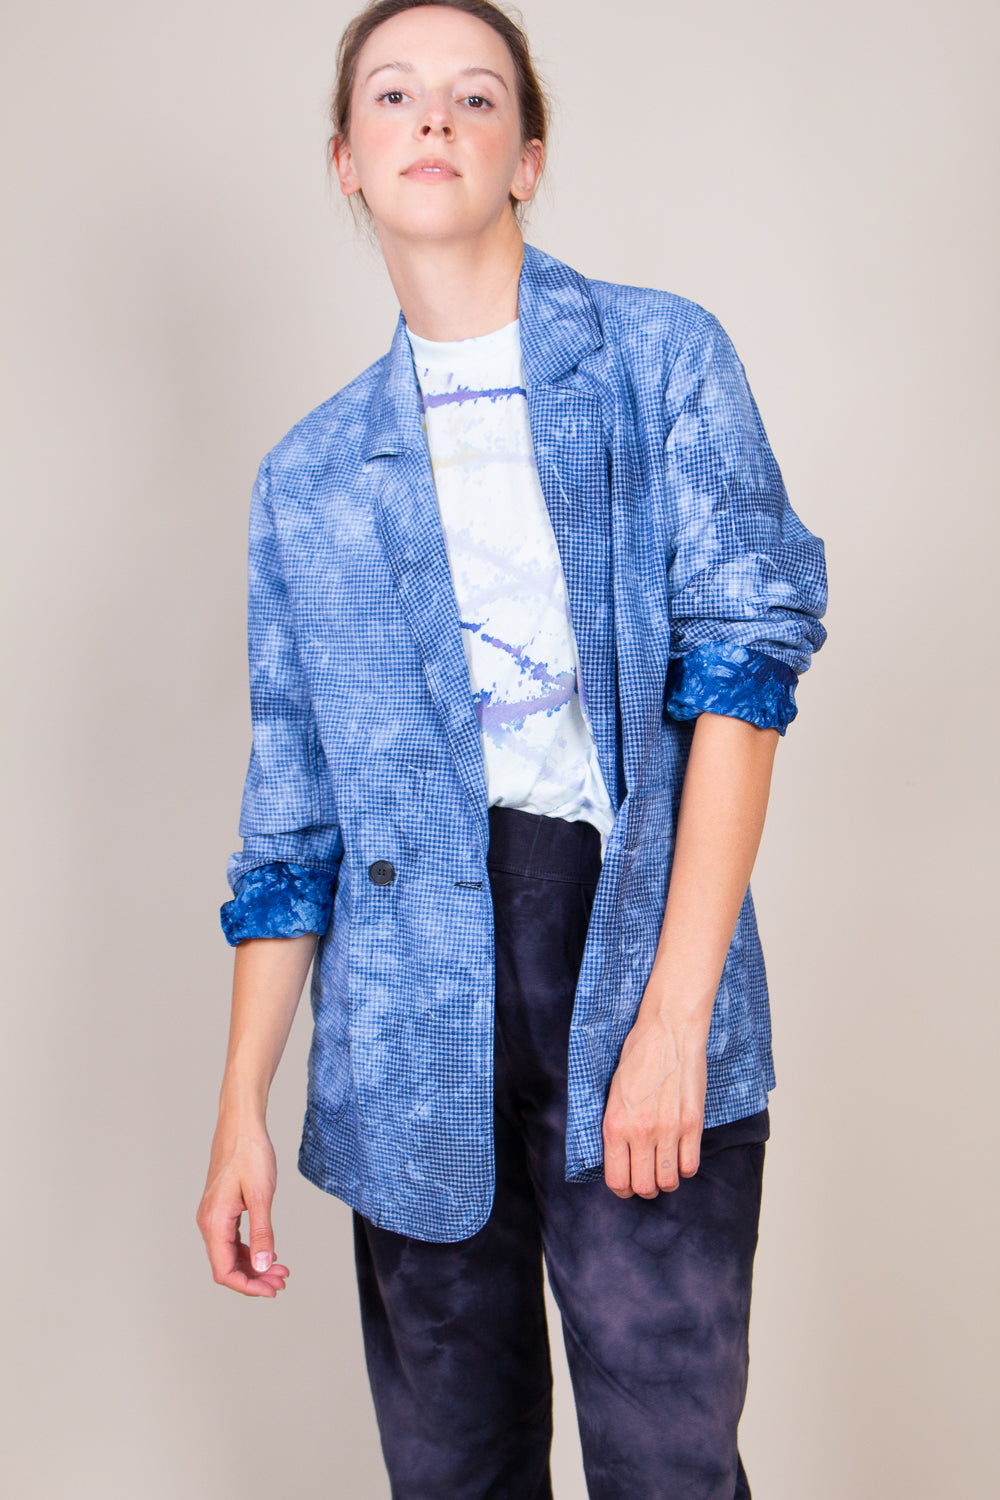 Boyfriend Blazer in Blue Tie Dye